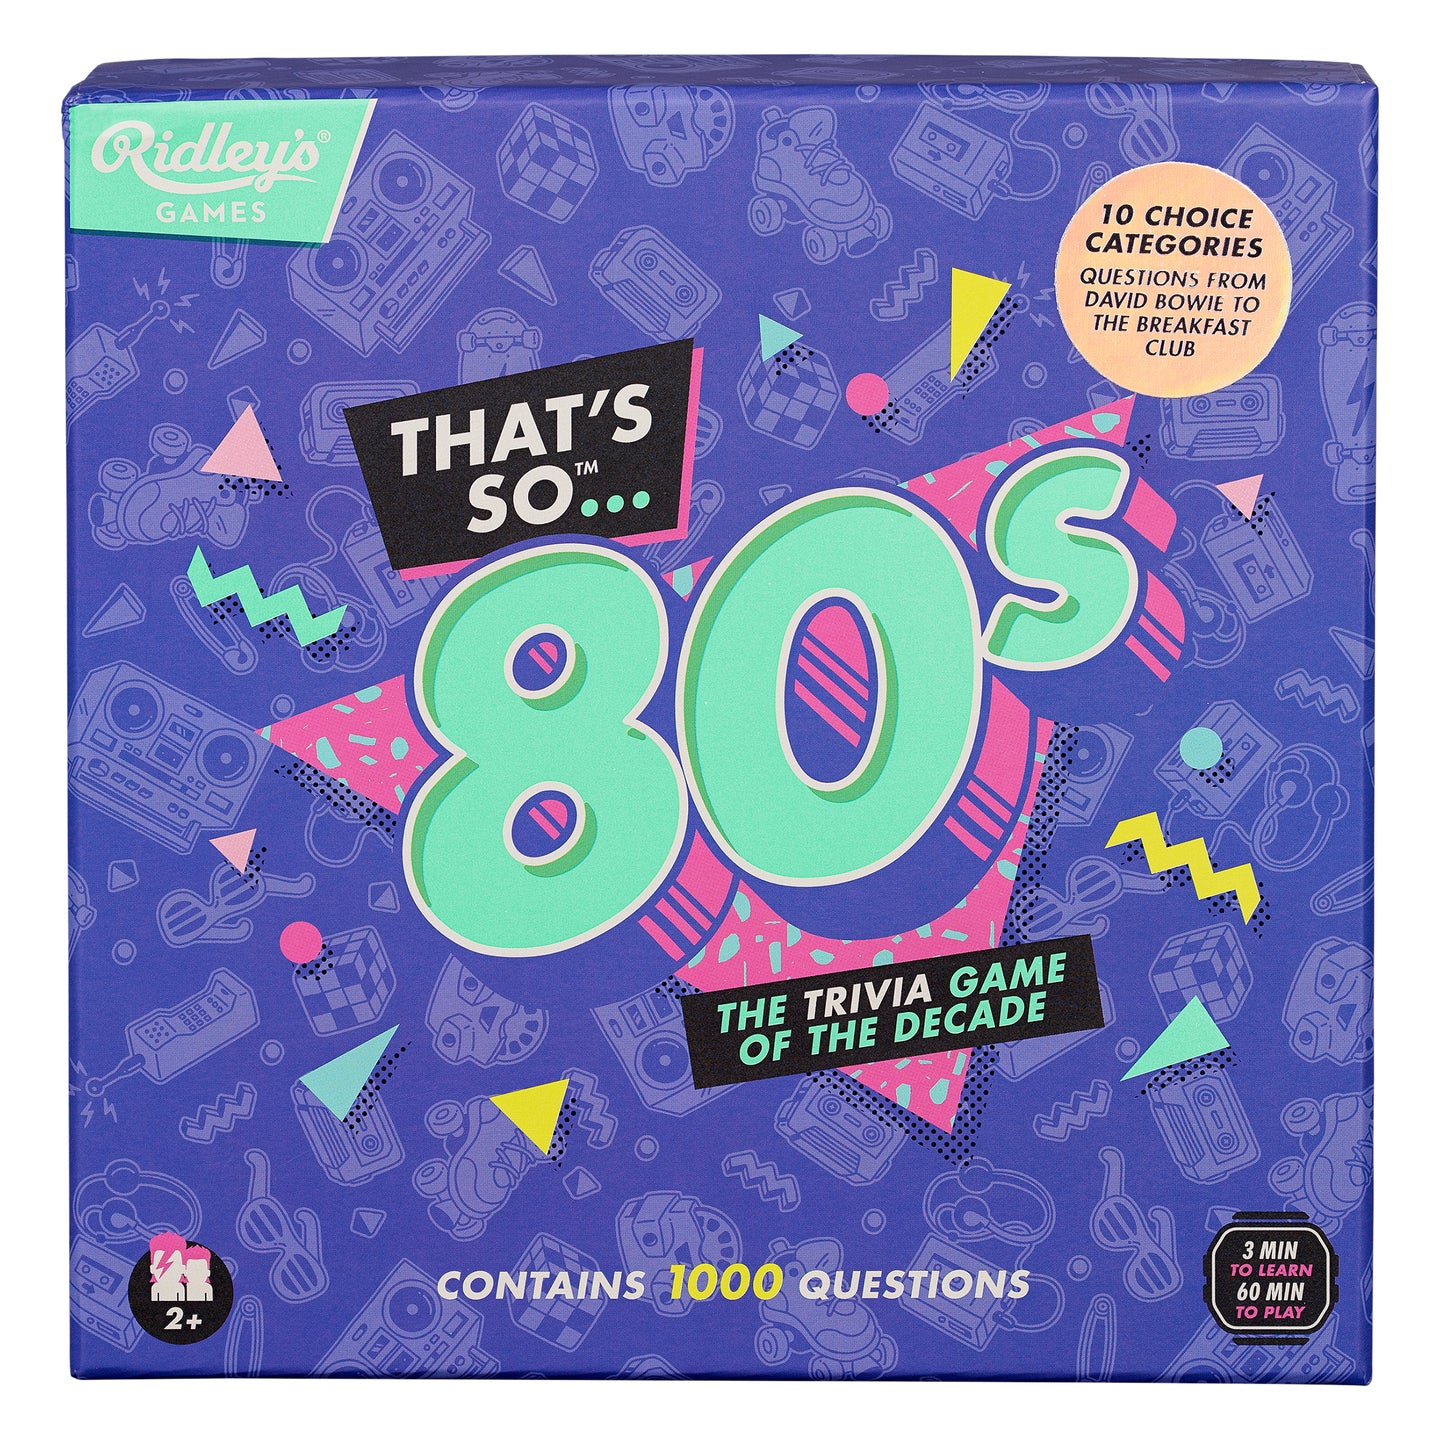 Ridley's Games That's So 80s Quiz